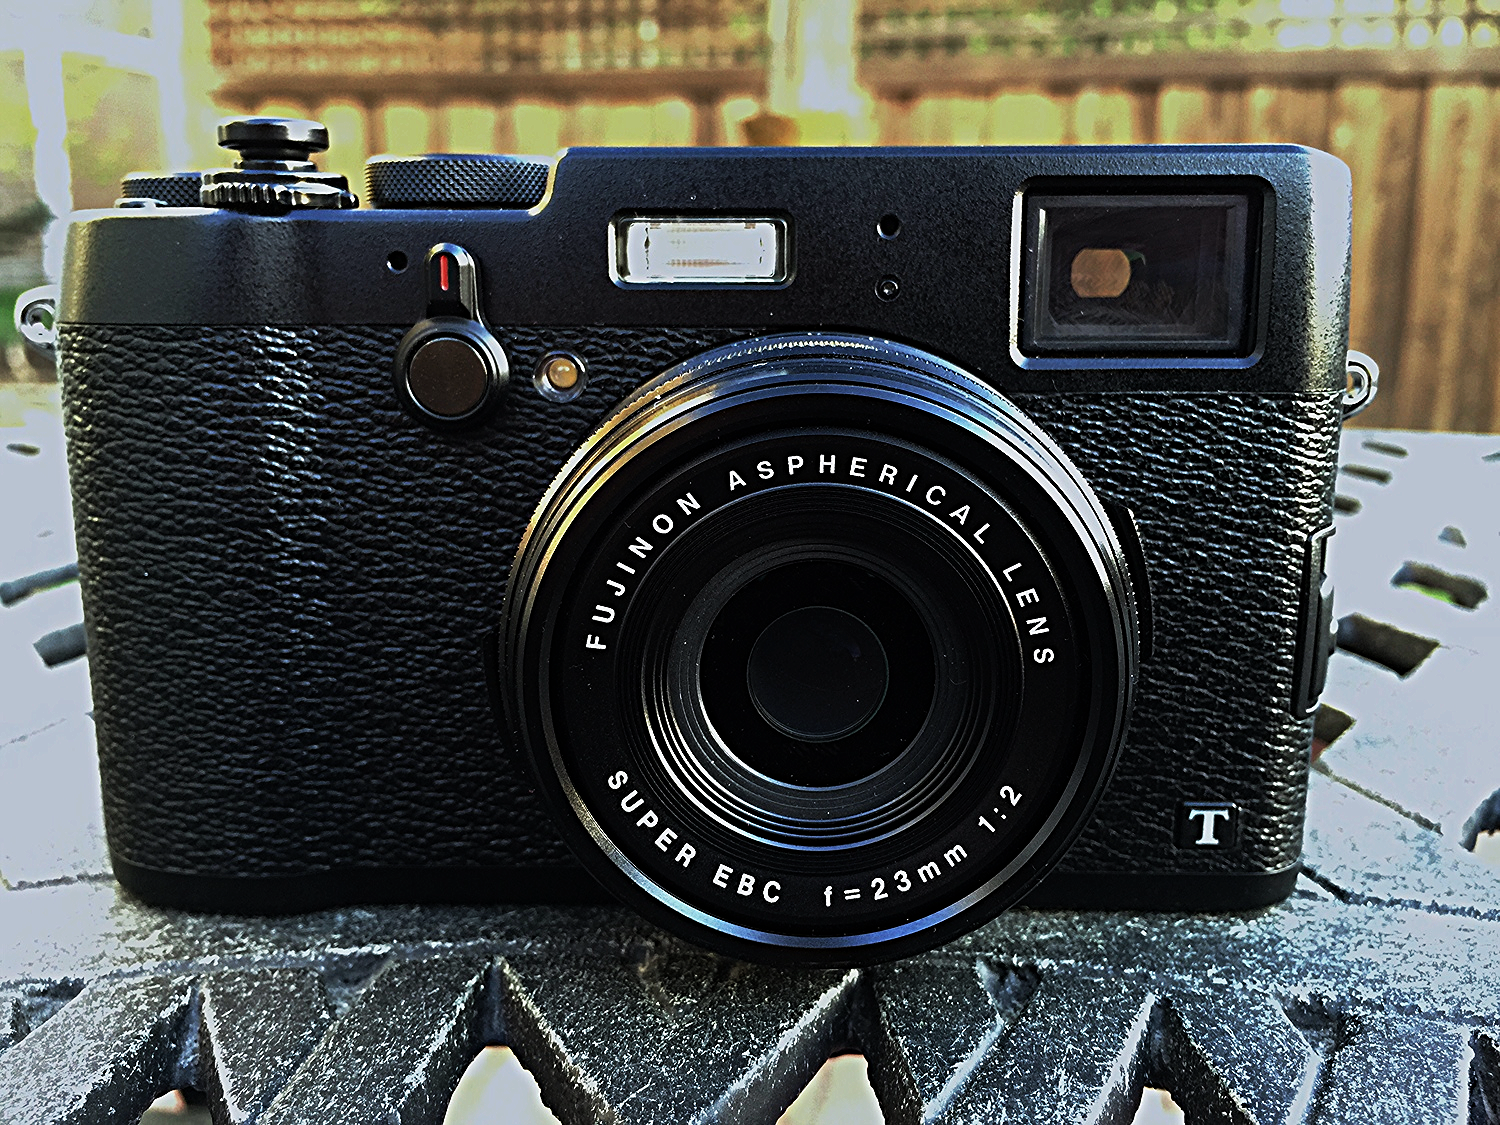 My new Fuji X100T, Photo taken with iPhone 6Plus, Camera+ app.